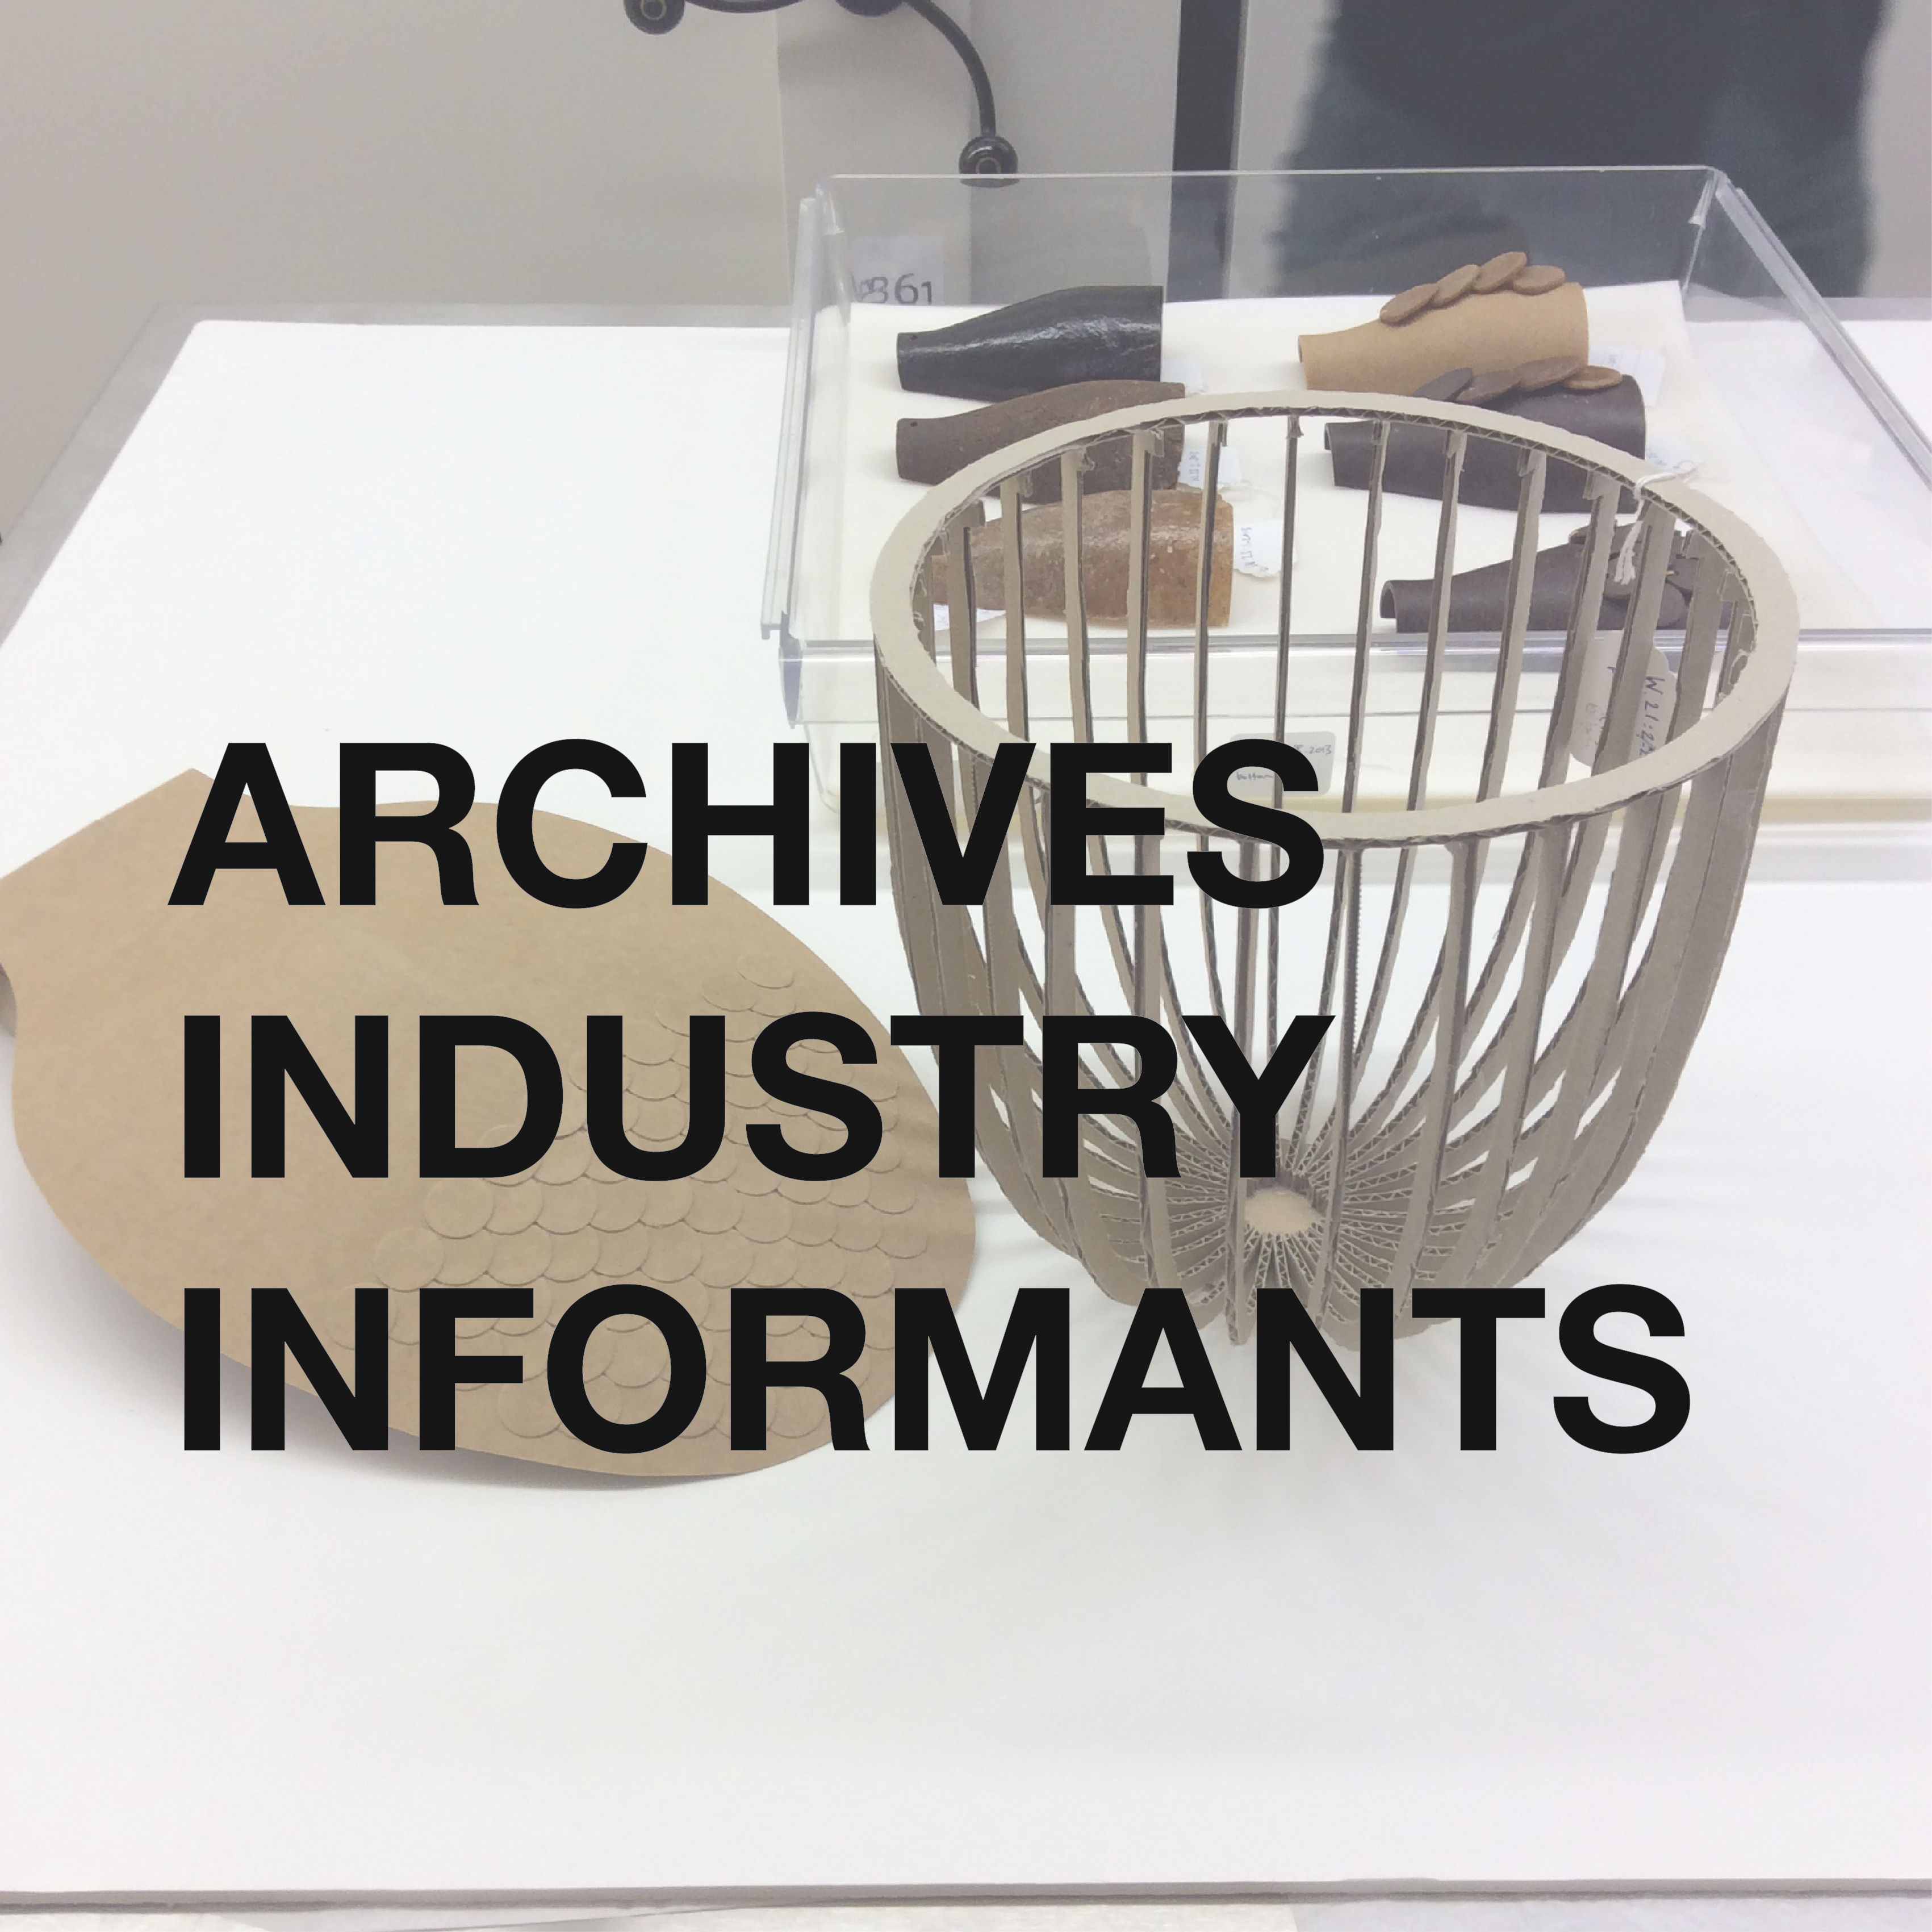 ARCHIVES AND INDUSTRY INFORMANTS